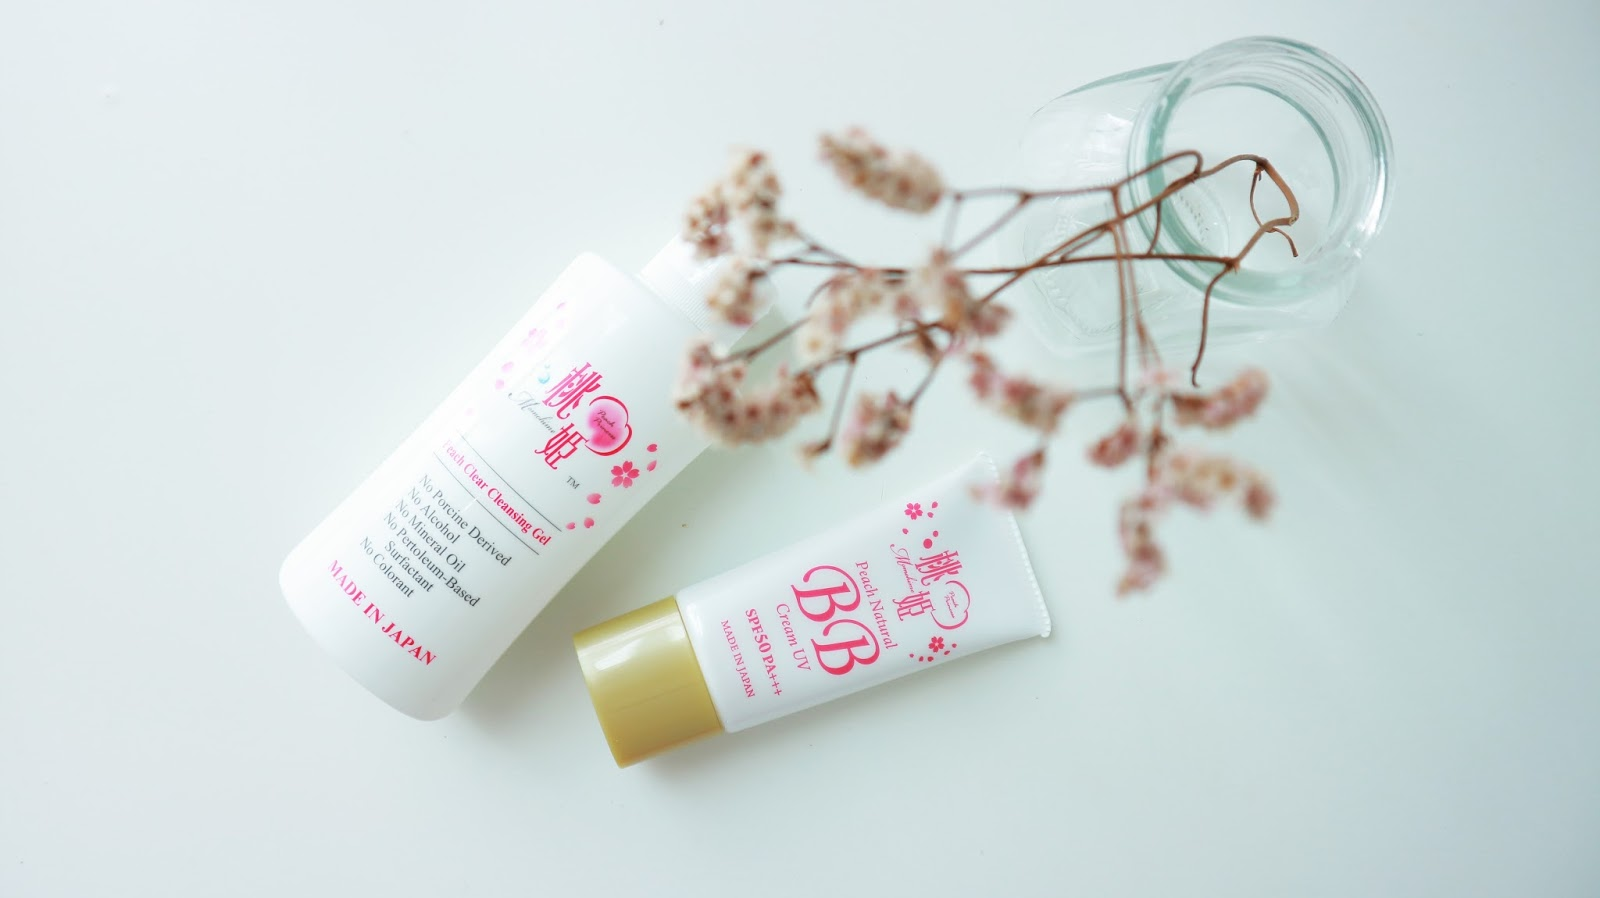 Momohime BB cream & Cleansing Gel Review (New Arrivals